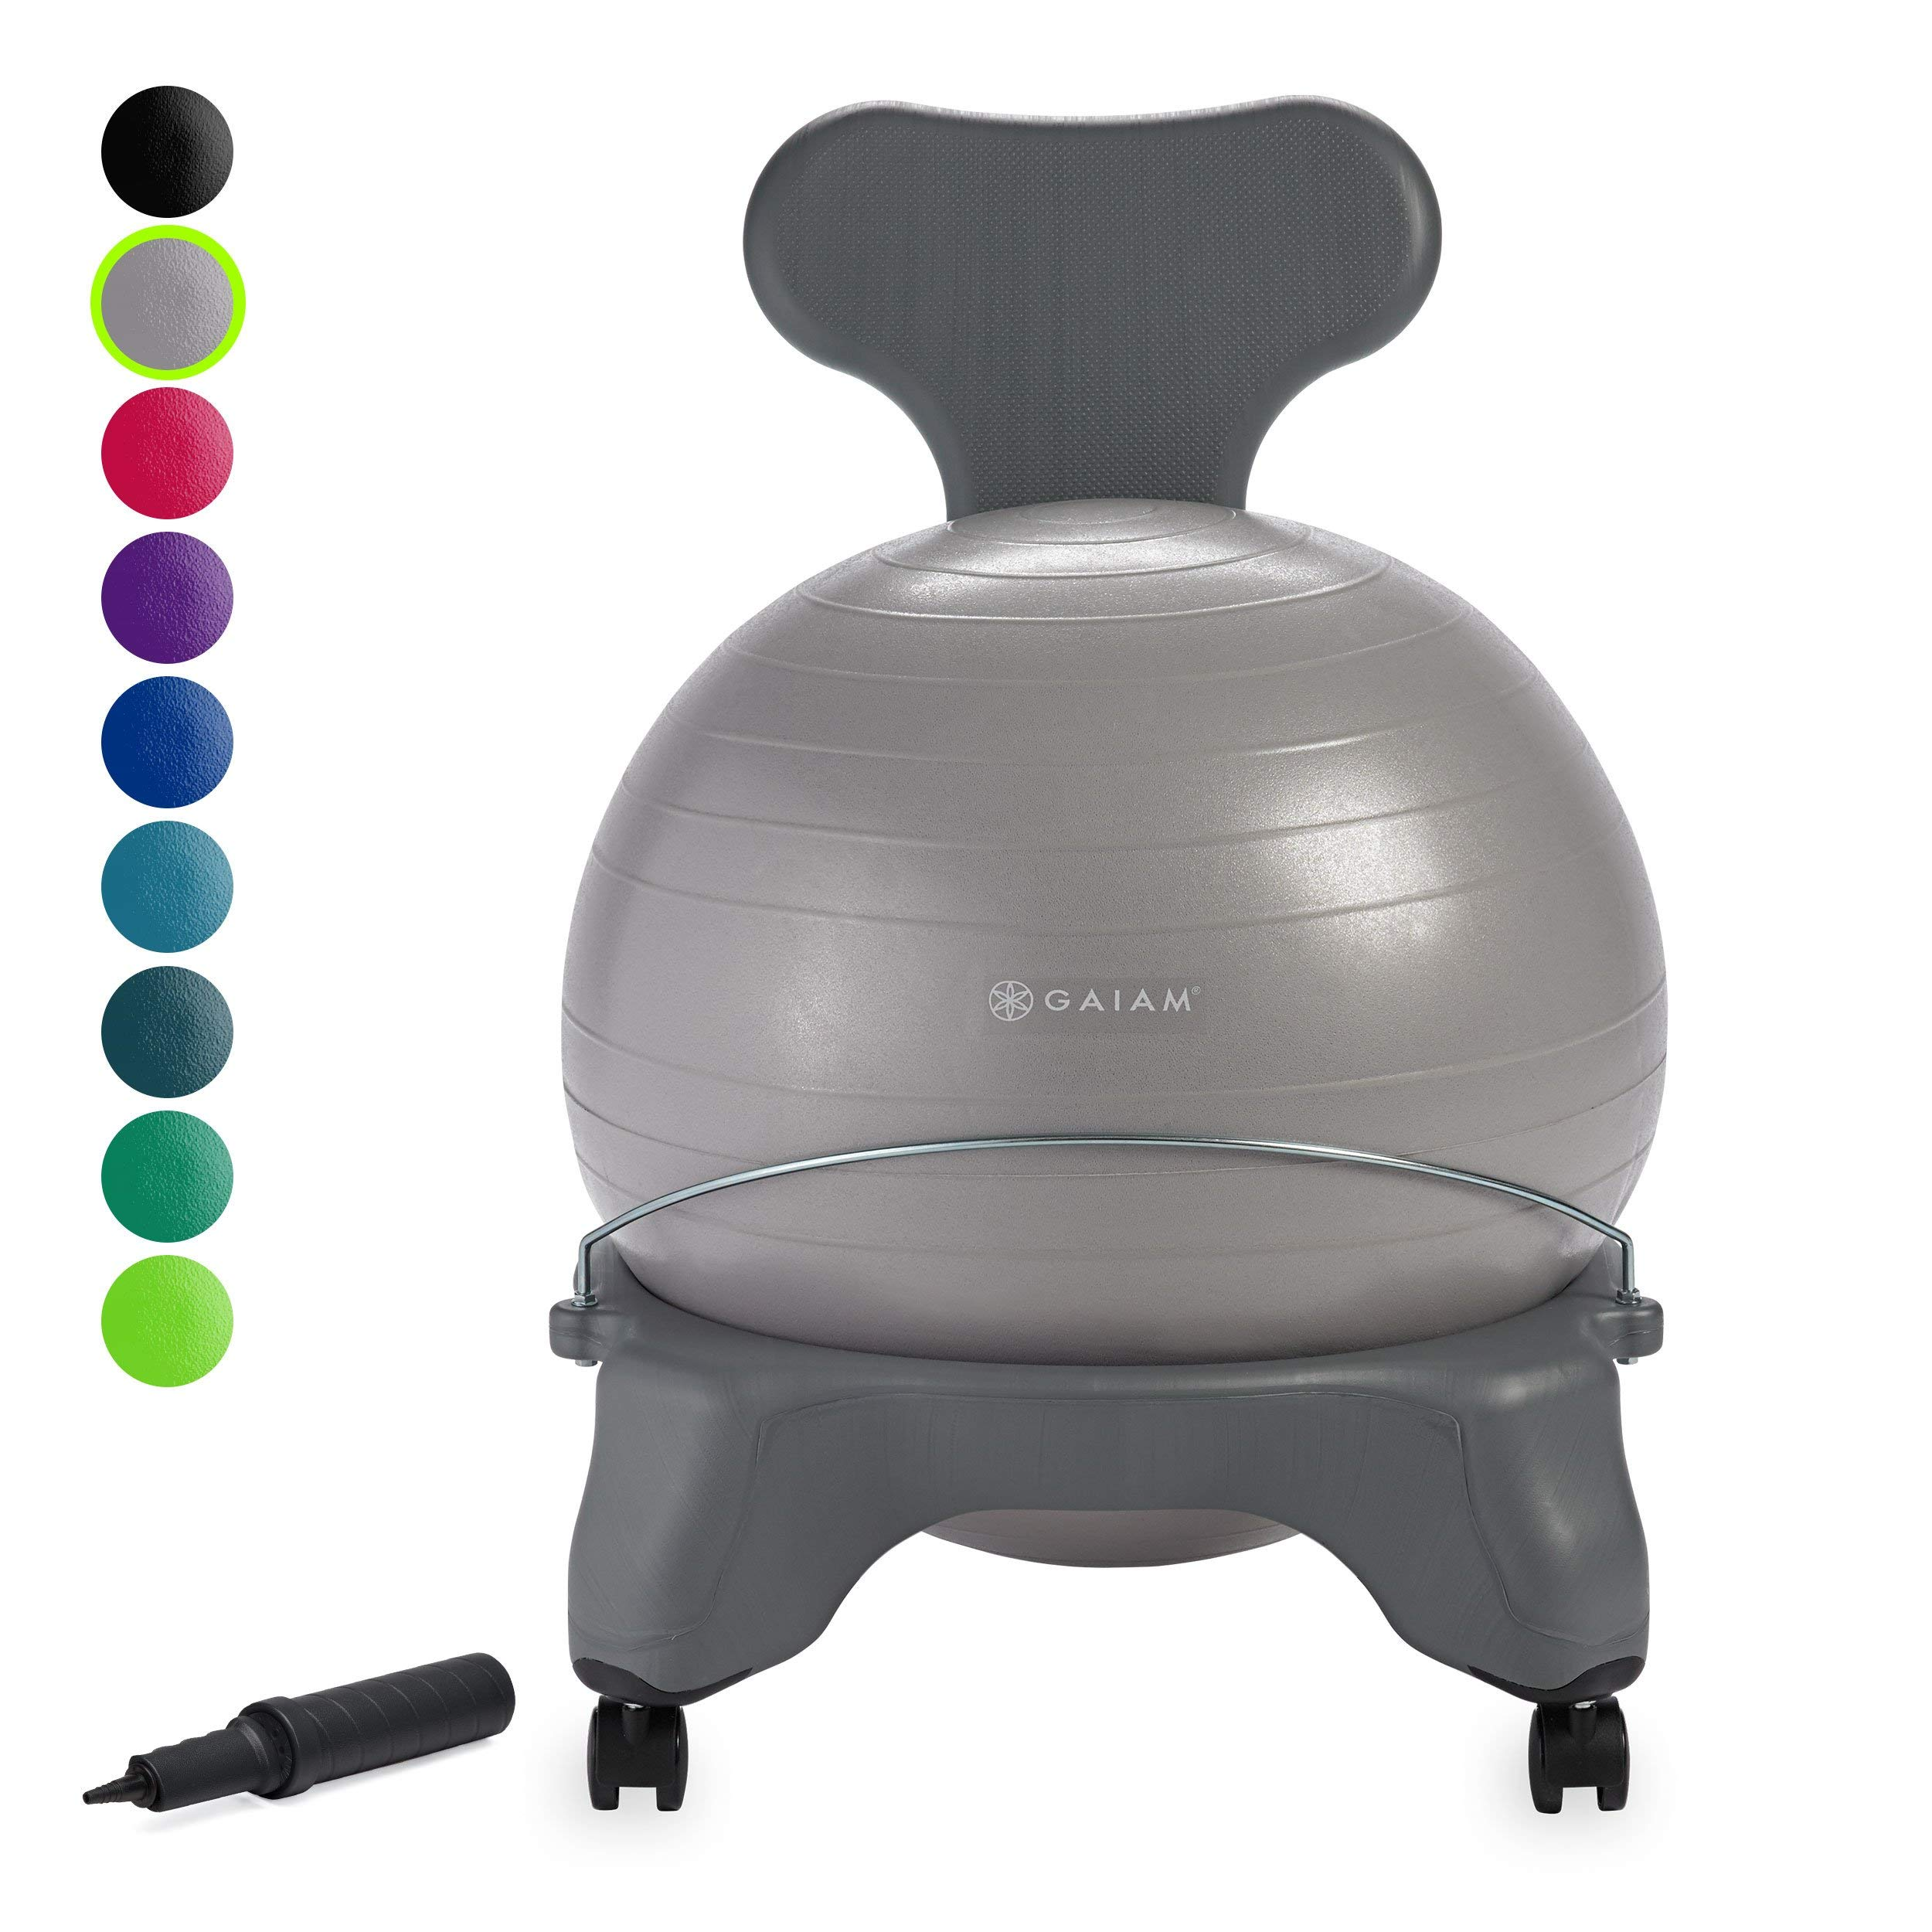 Gaiam Classic Balance Ball Chair - Exercise Stability Yoga Ball Premium Ergonomic Chair for Home, Office Desk w/Air Pump, Exercise Guide and Satisfaction Guarantee, Cool Grey (Renewed)